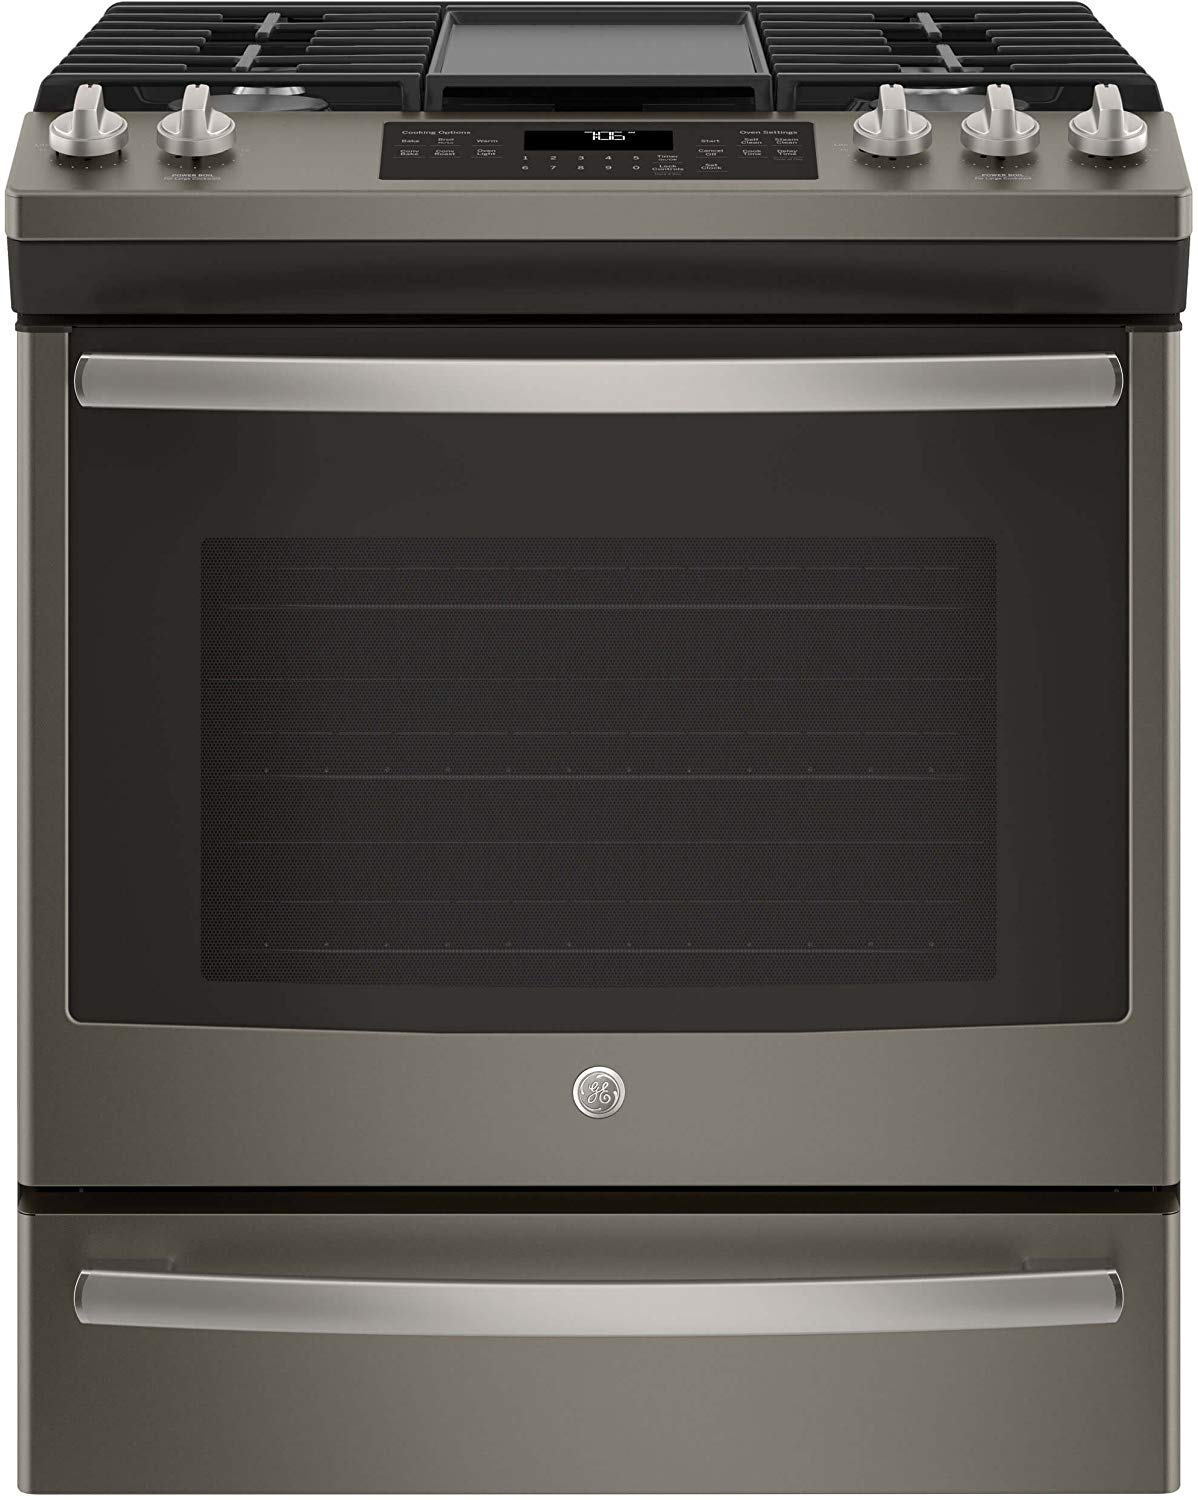 GE JGS760EELES Sealed Burner Cooktop